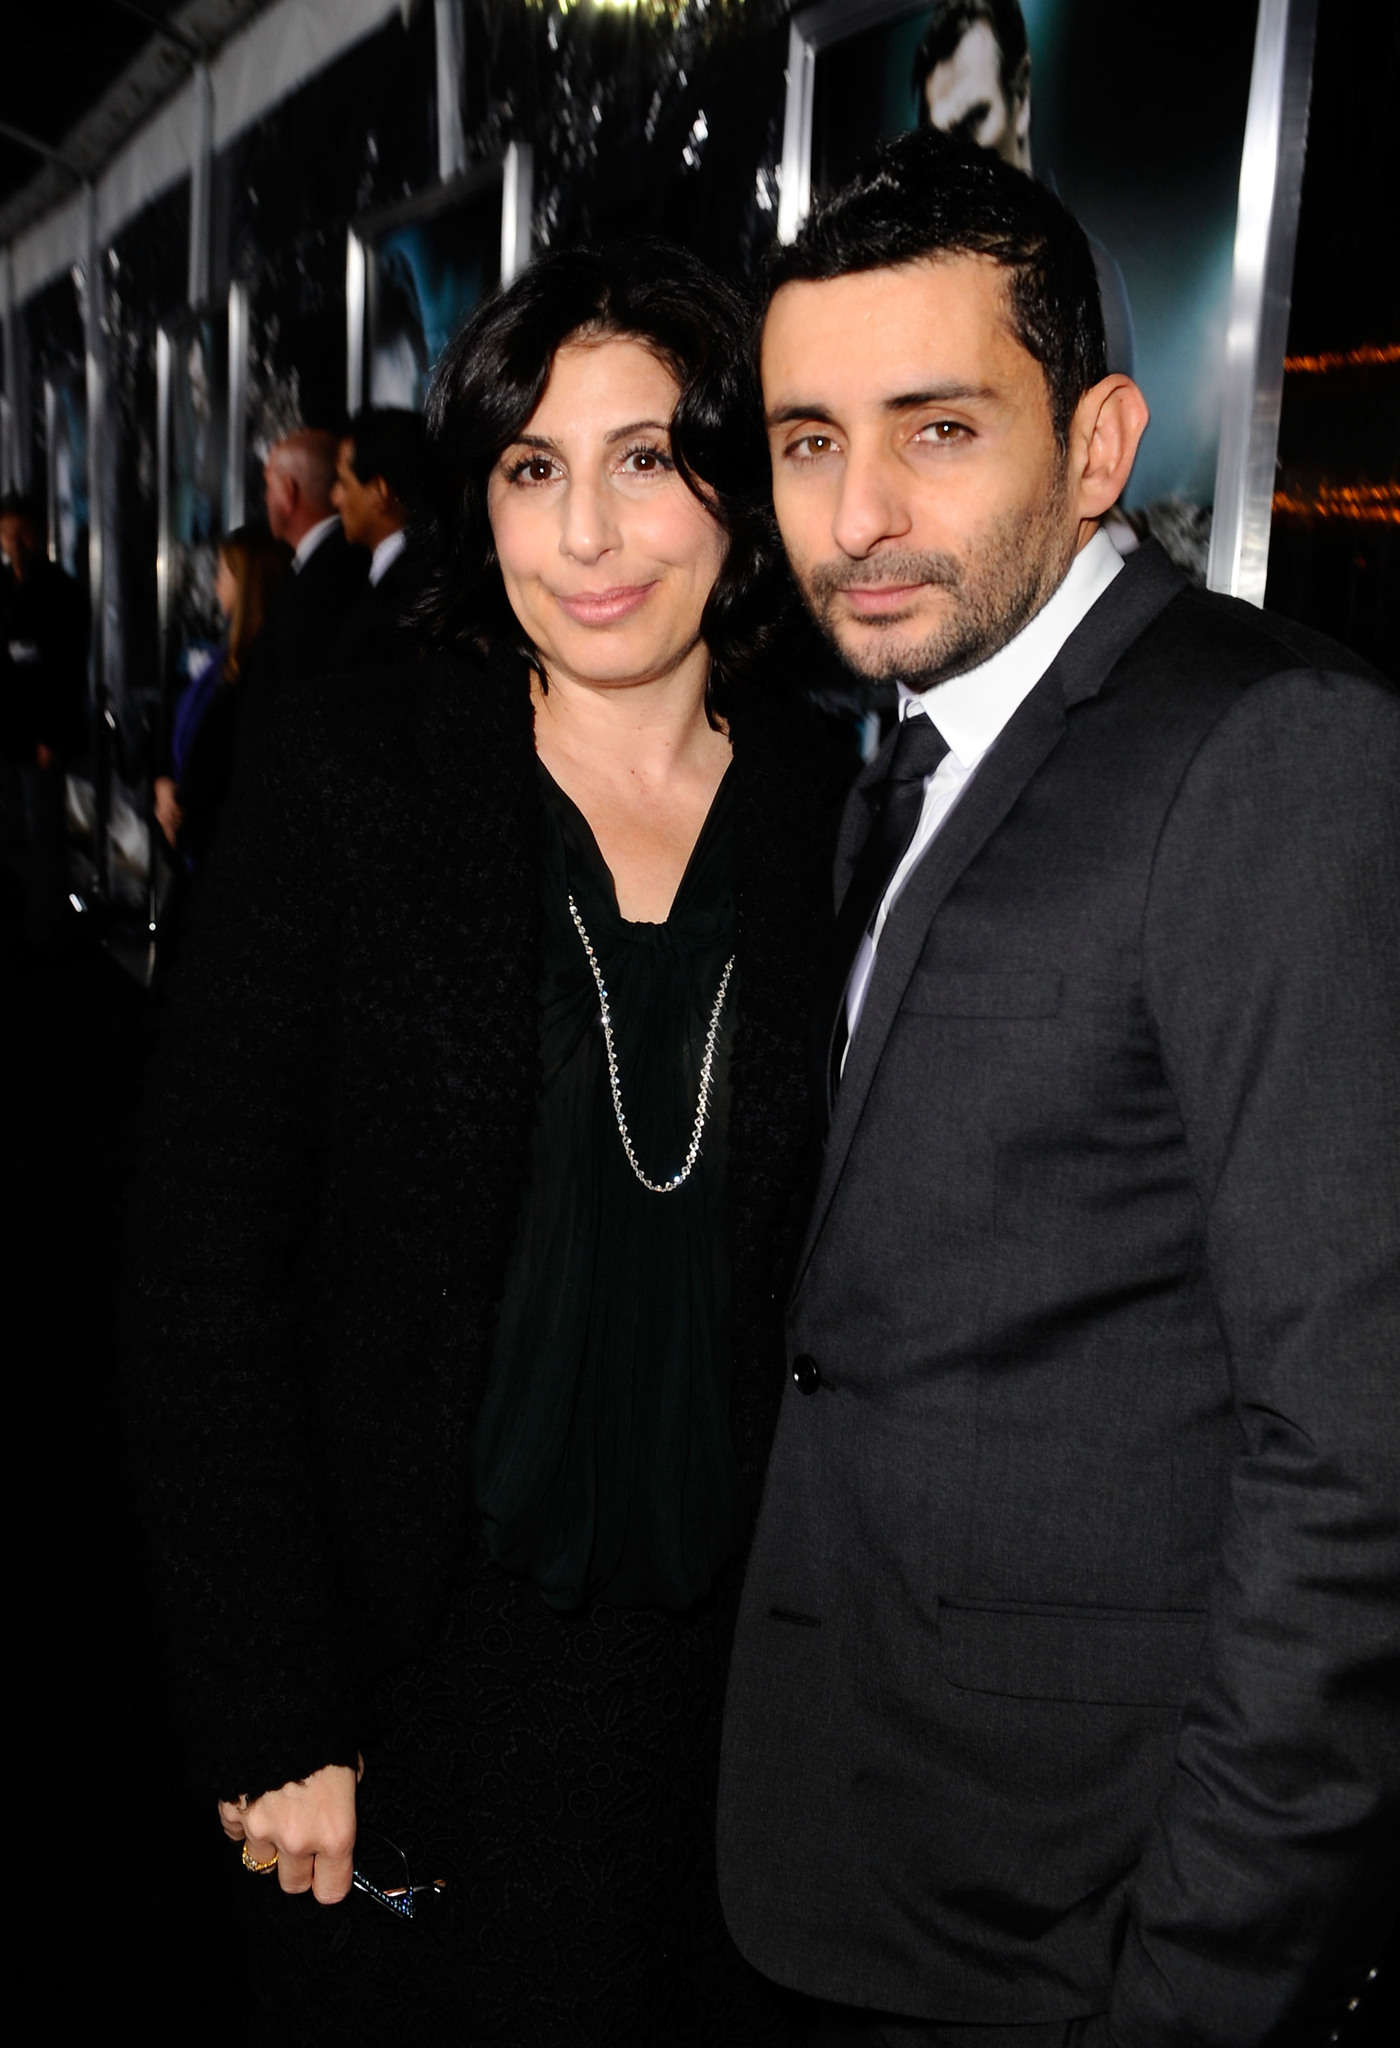 Jaume Collet-Serra and Sue Kroll at an event for Unknown (2011)